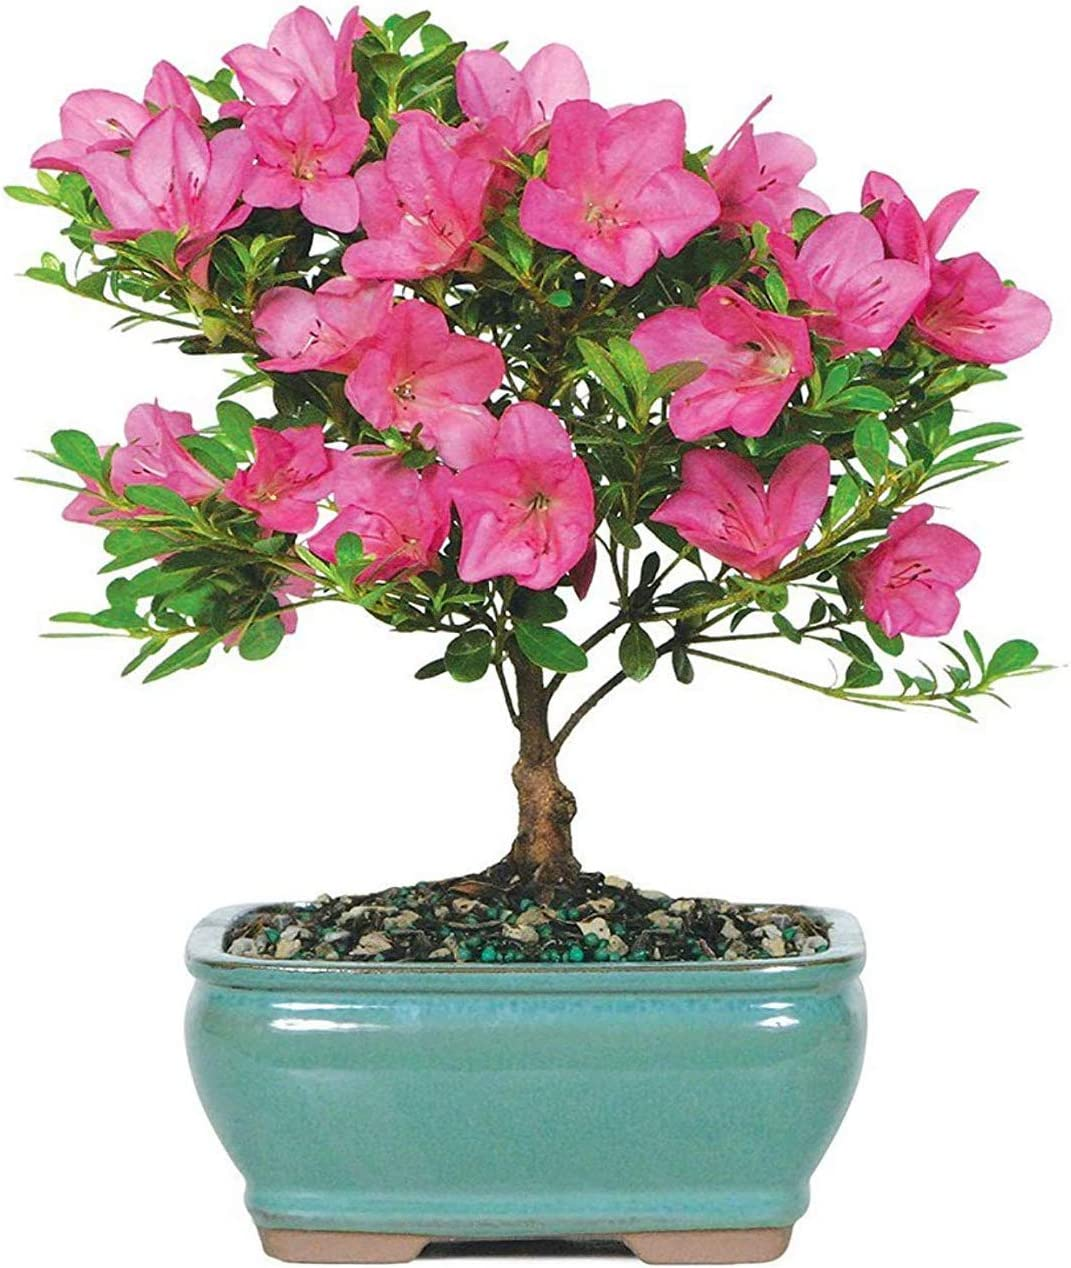 Brussel S Bonsai Live Satsuki Azalea Outdoor Bonsai Tree 5 Years Old 6 To 8 Tall With Decorative Container Small Grocery Gourmet Food Amazon Com